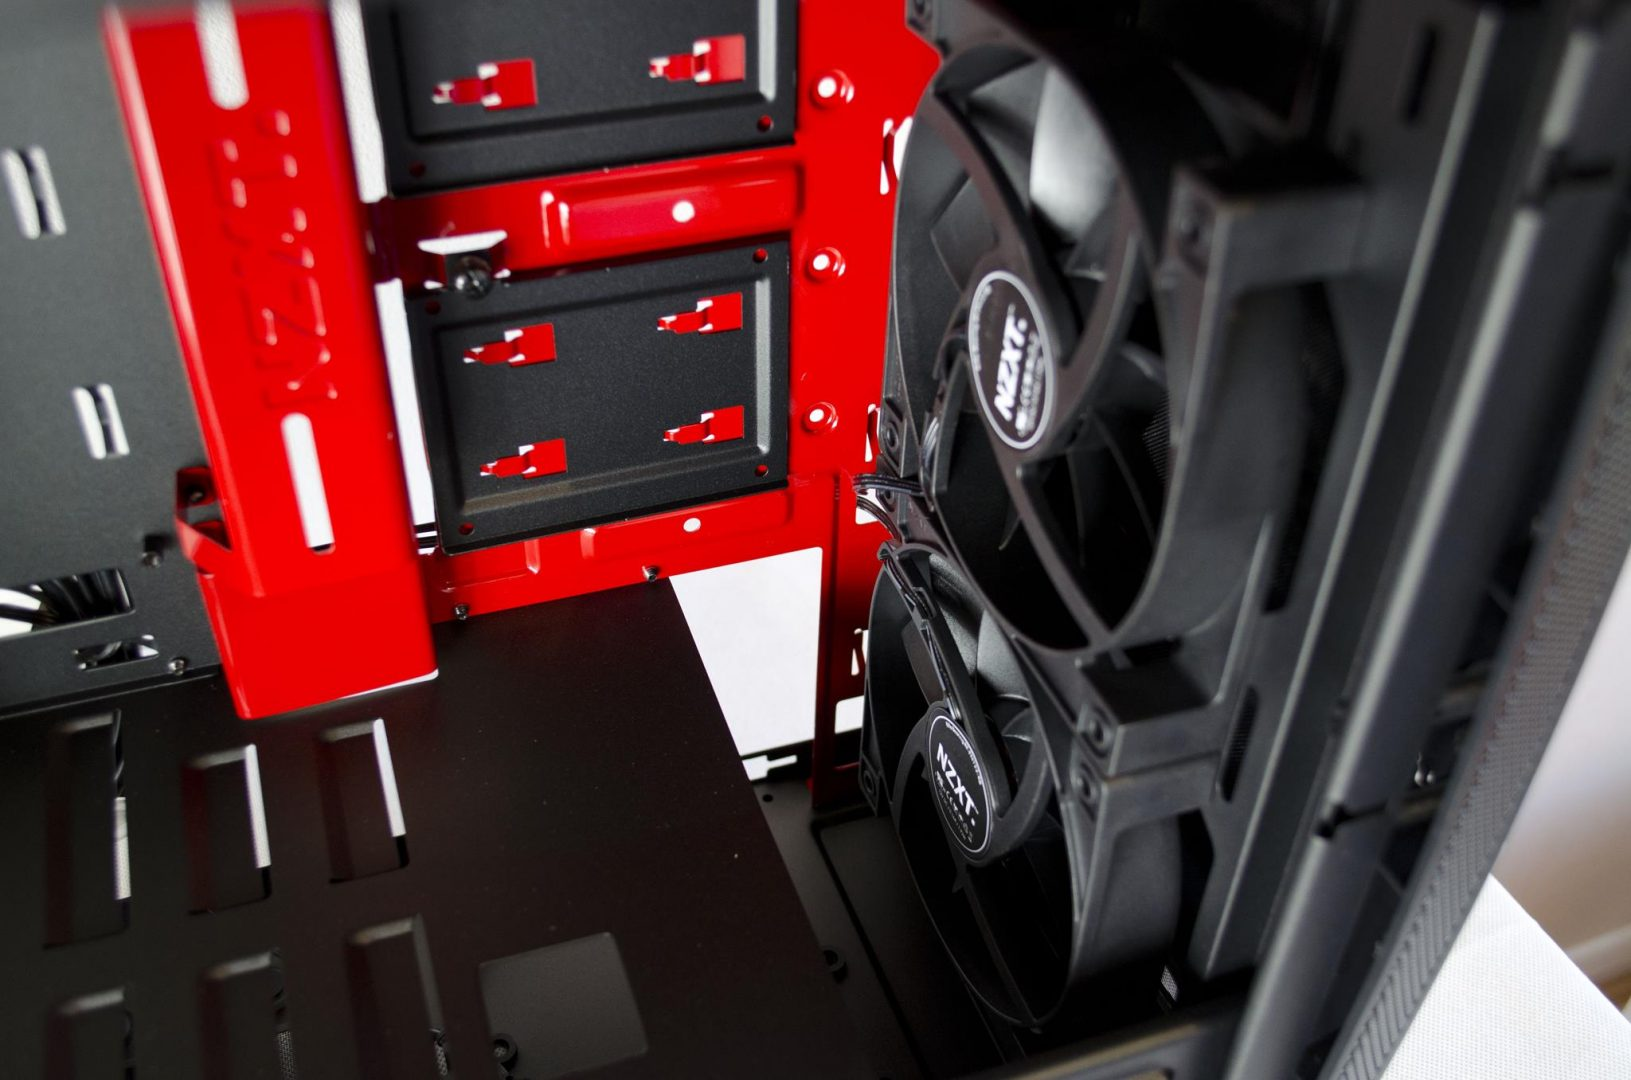 nzxt manta pc case review_8